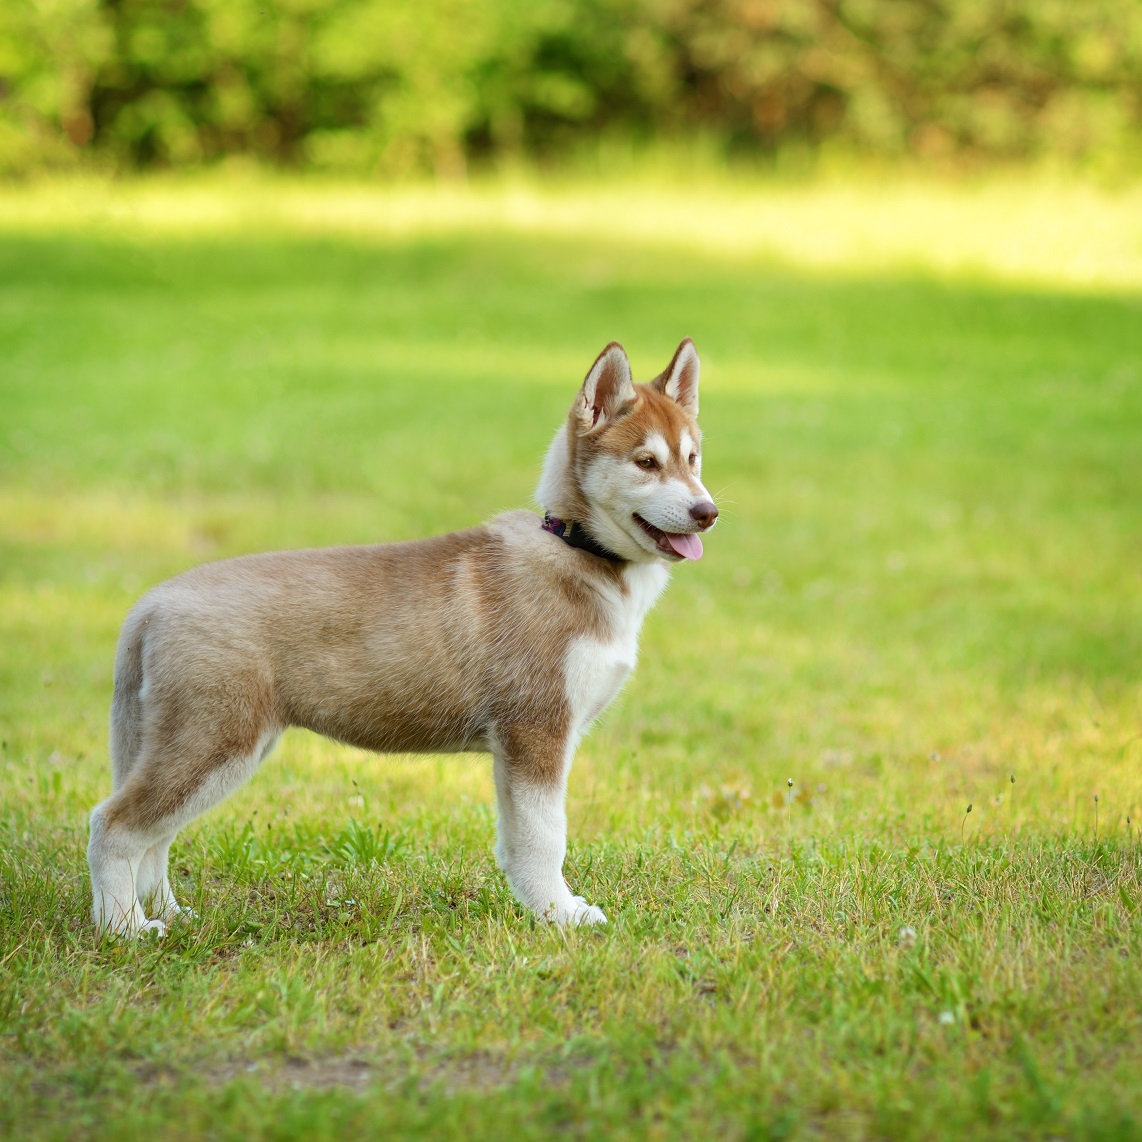 husky puppy in yard